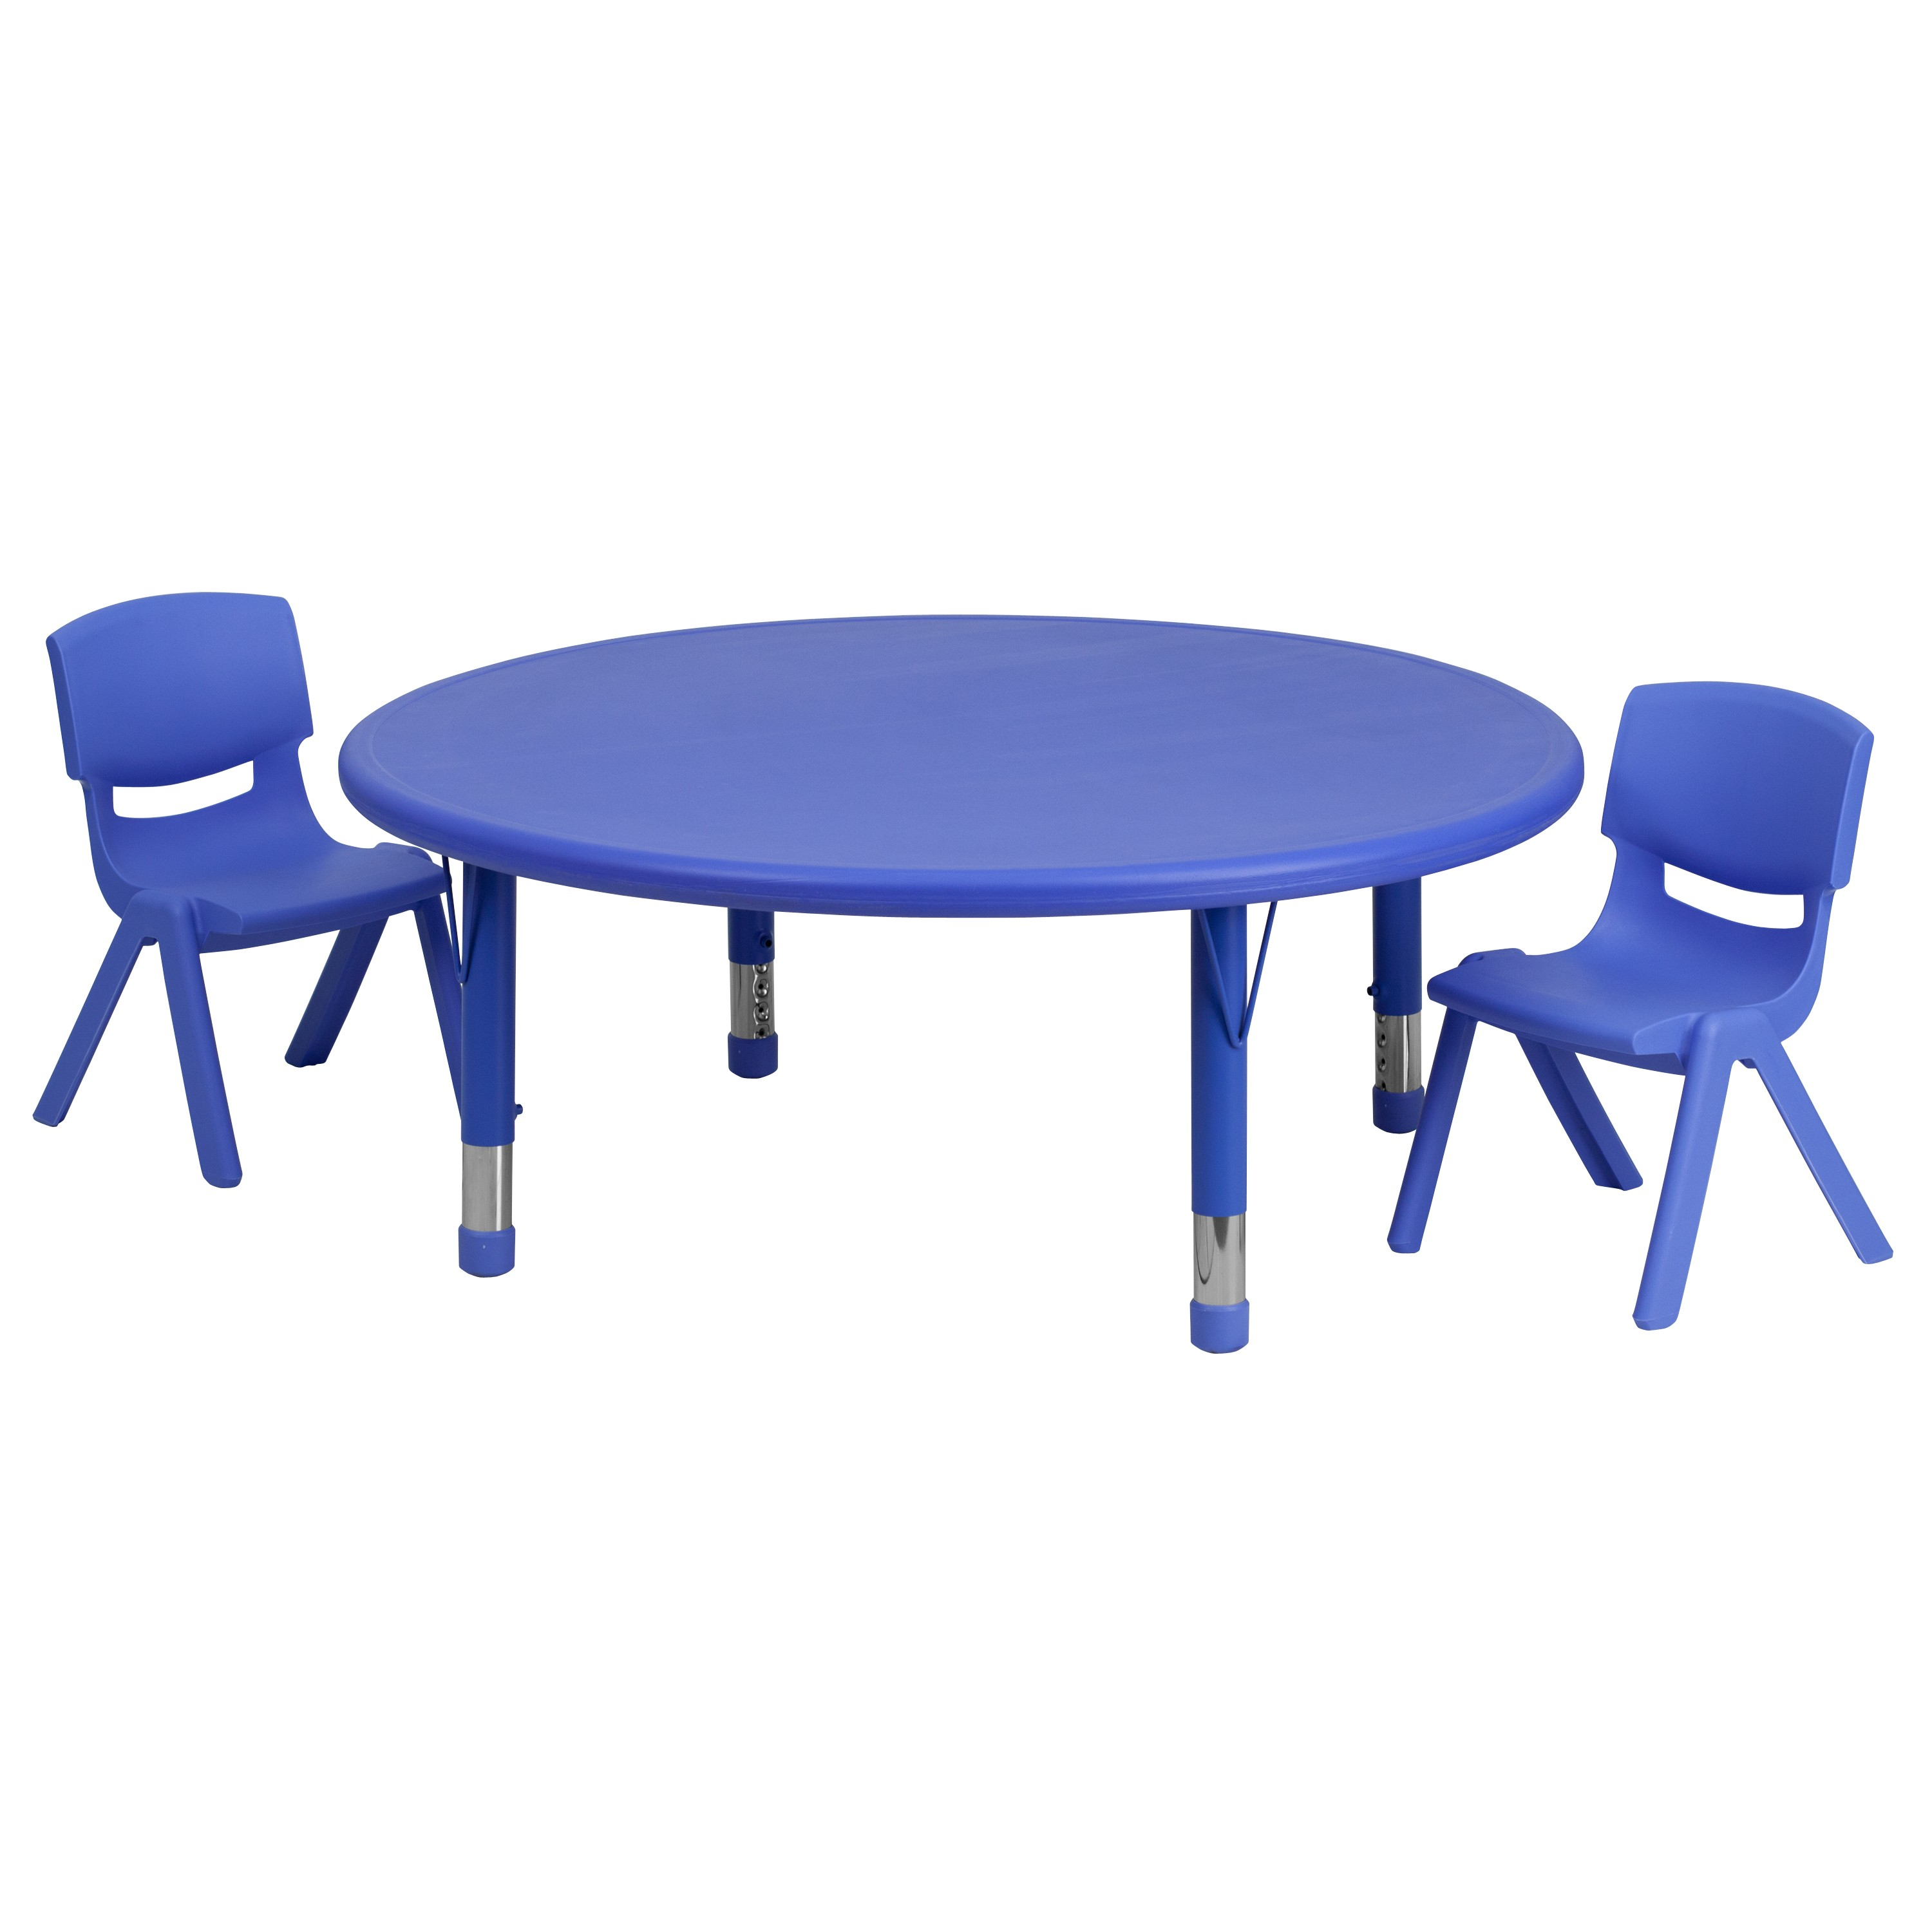 Activity Chair Mfo 45 Round Adjustable Blue Plastic Activity Table Set With 2 School Stack Chairs